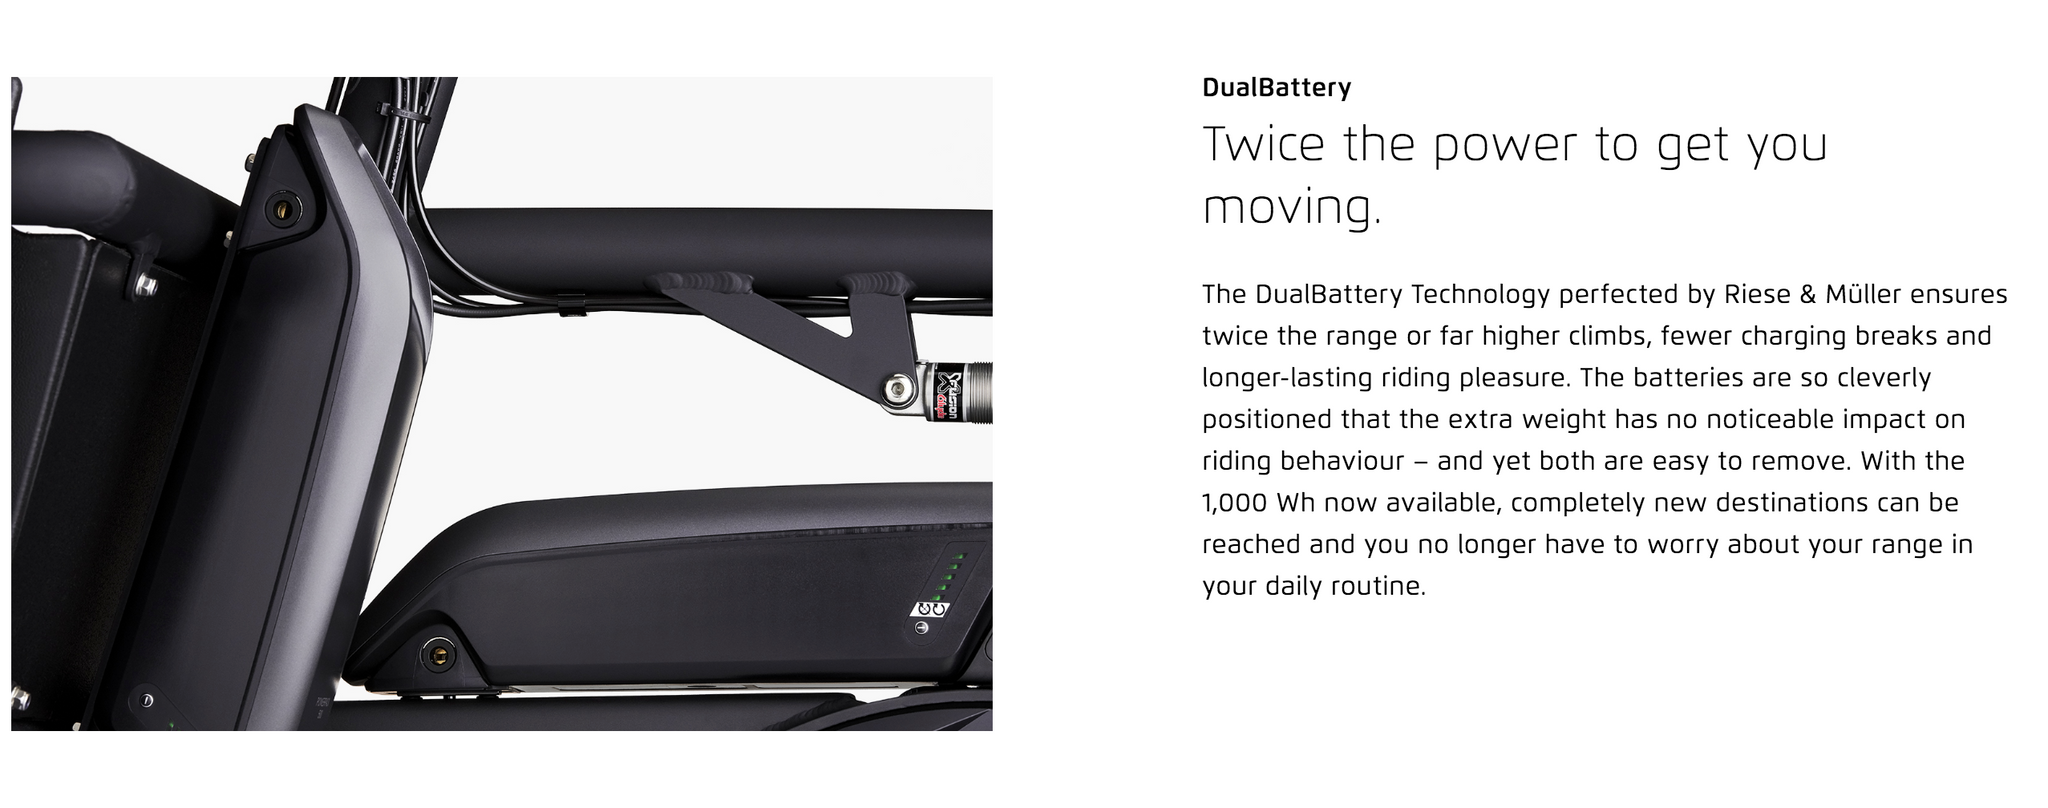 DualBattery  Twice the power to get you moving. The DualBattery Technology perfected by Riese & Müller ensures twice the range or far higher climbs, fewer charging breaks and longer-lasting riding pleasure. The batteries are so cleverly positioned that the extra weight has no noticeable impact on riding behaviour – and yet both are easy to remove. With the 1,000 Wh now available, completely new destinations can be reached and you no longer have to worry about your range in your daily routine.